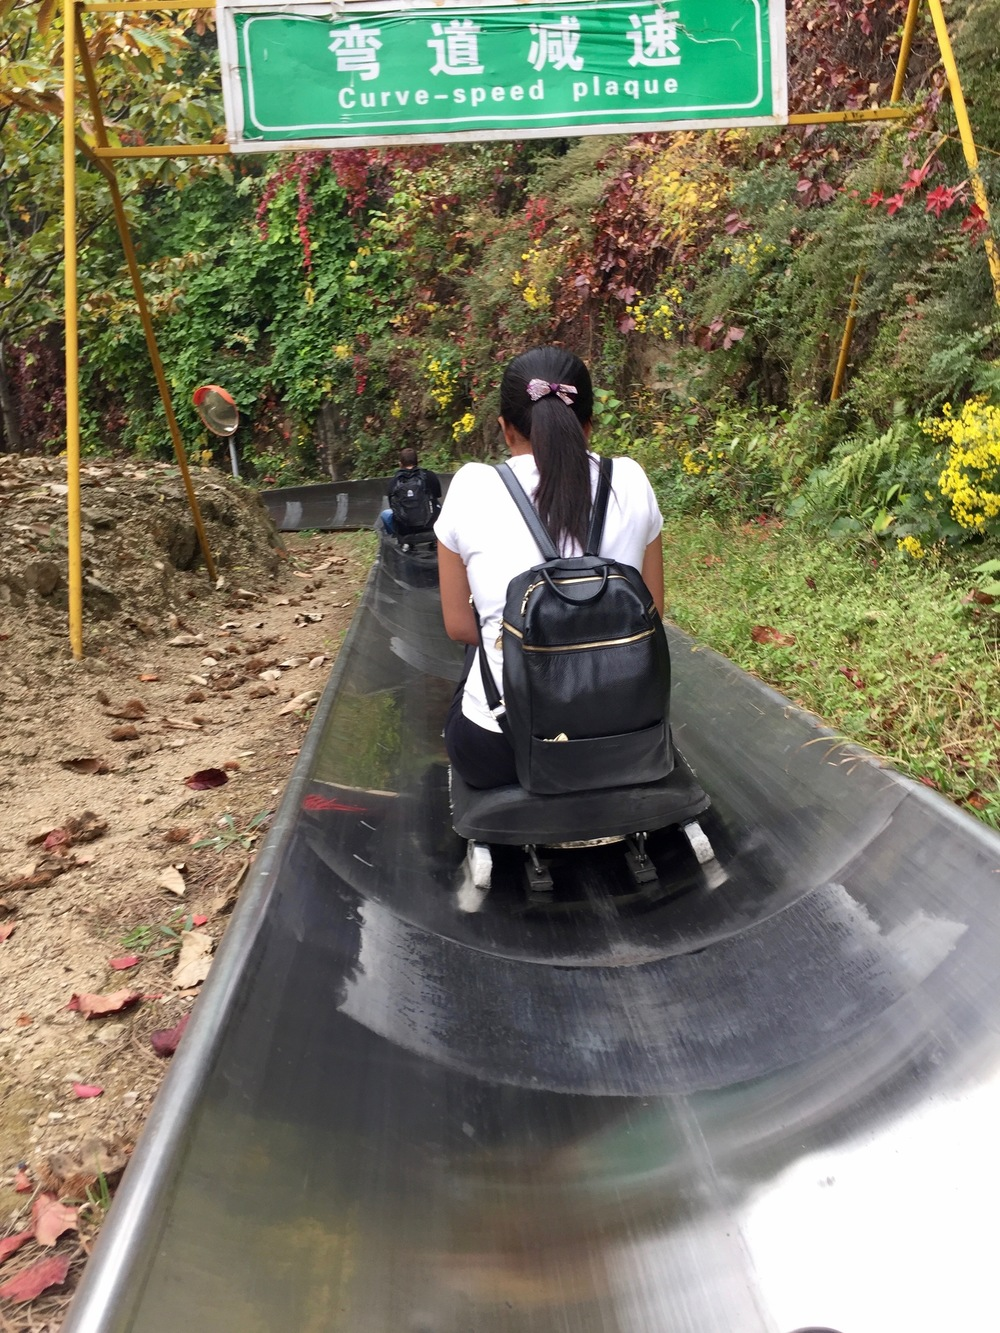 Instead of hiking down we chose to take the bobsled. How fun!